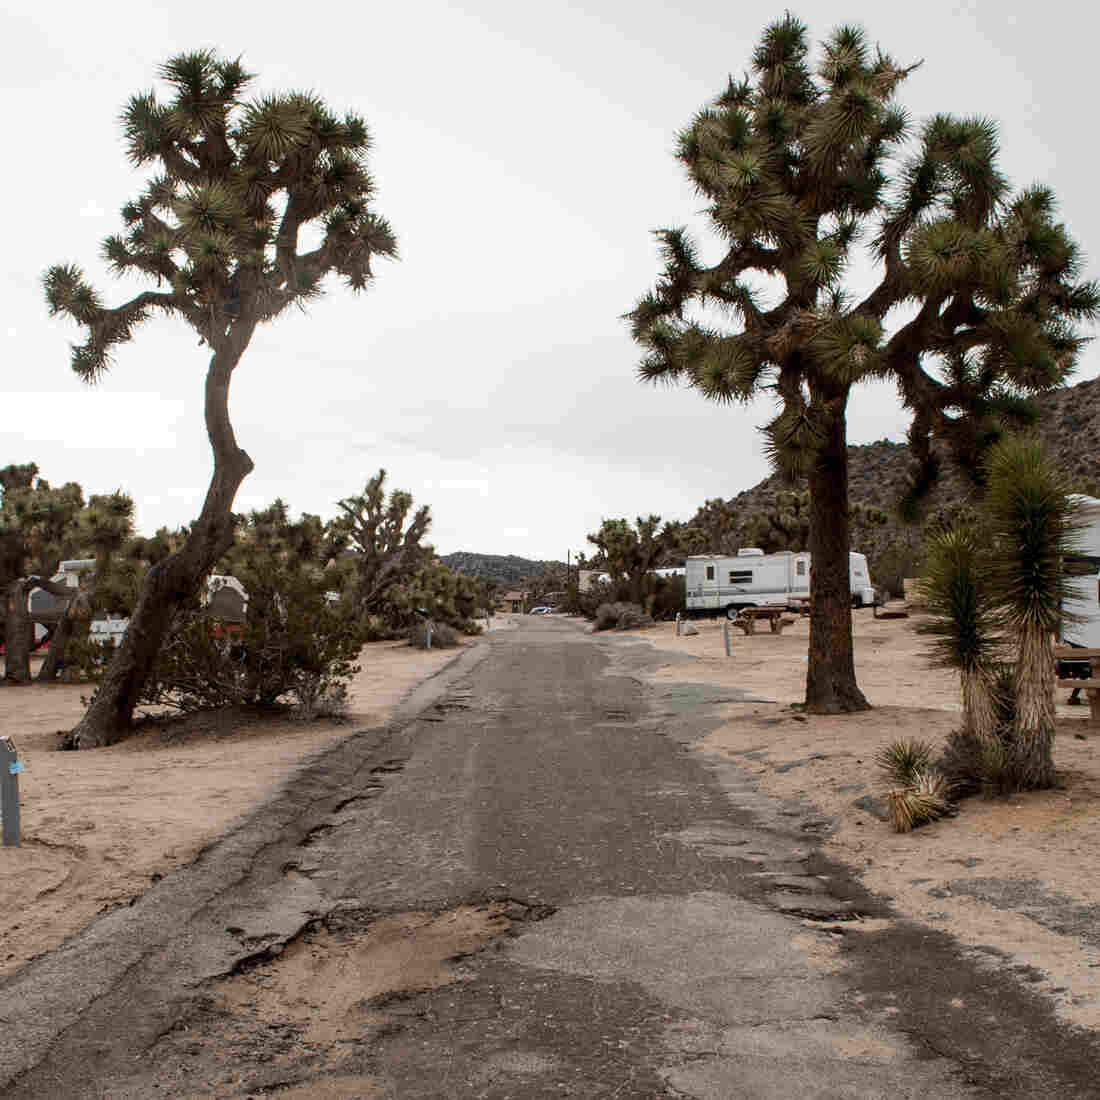 Flooding and the combined traffic of thousands of cars, trucks and RVs have torn up the roads at Joshua Tree National Park's Black Rock Canyon Campground. The majority of the park's $60 million maintenance backlog is for roads like this.